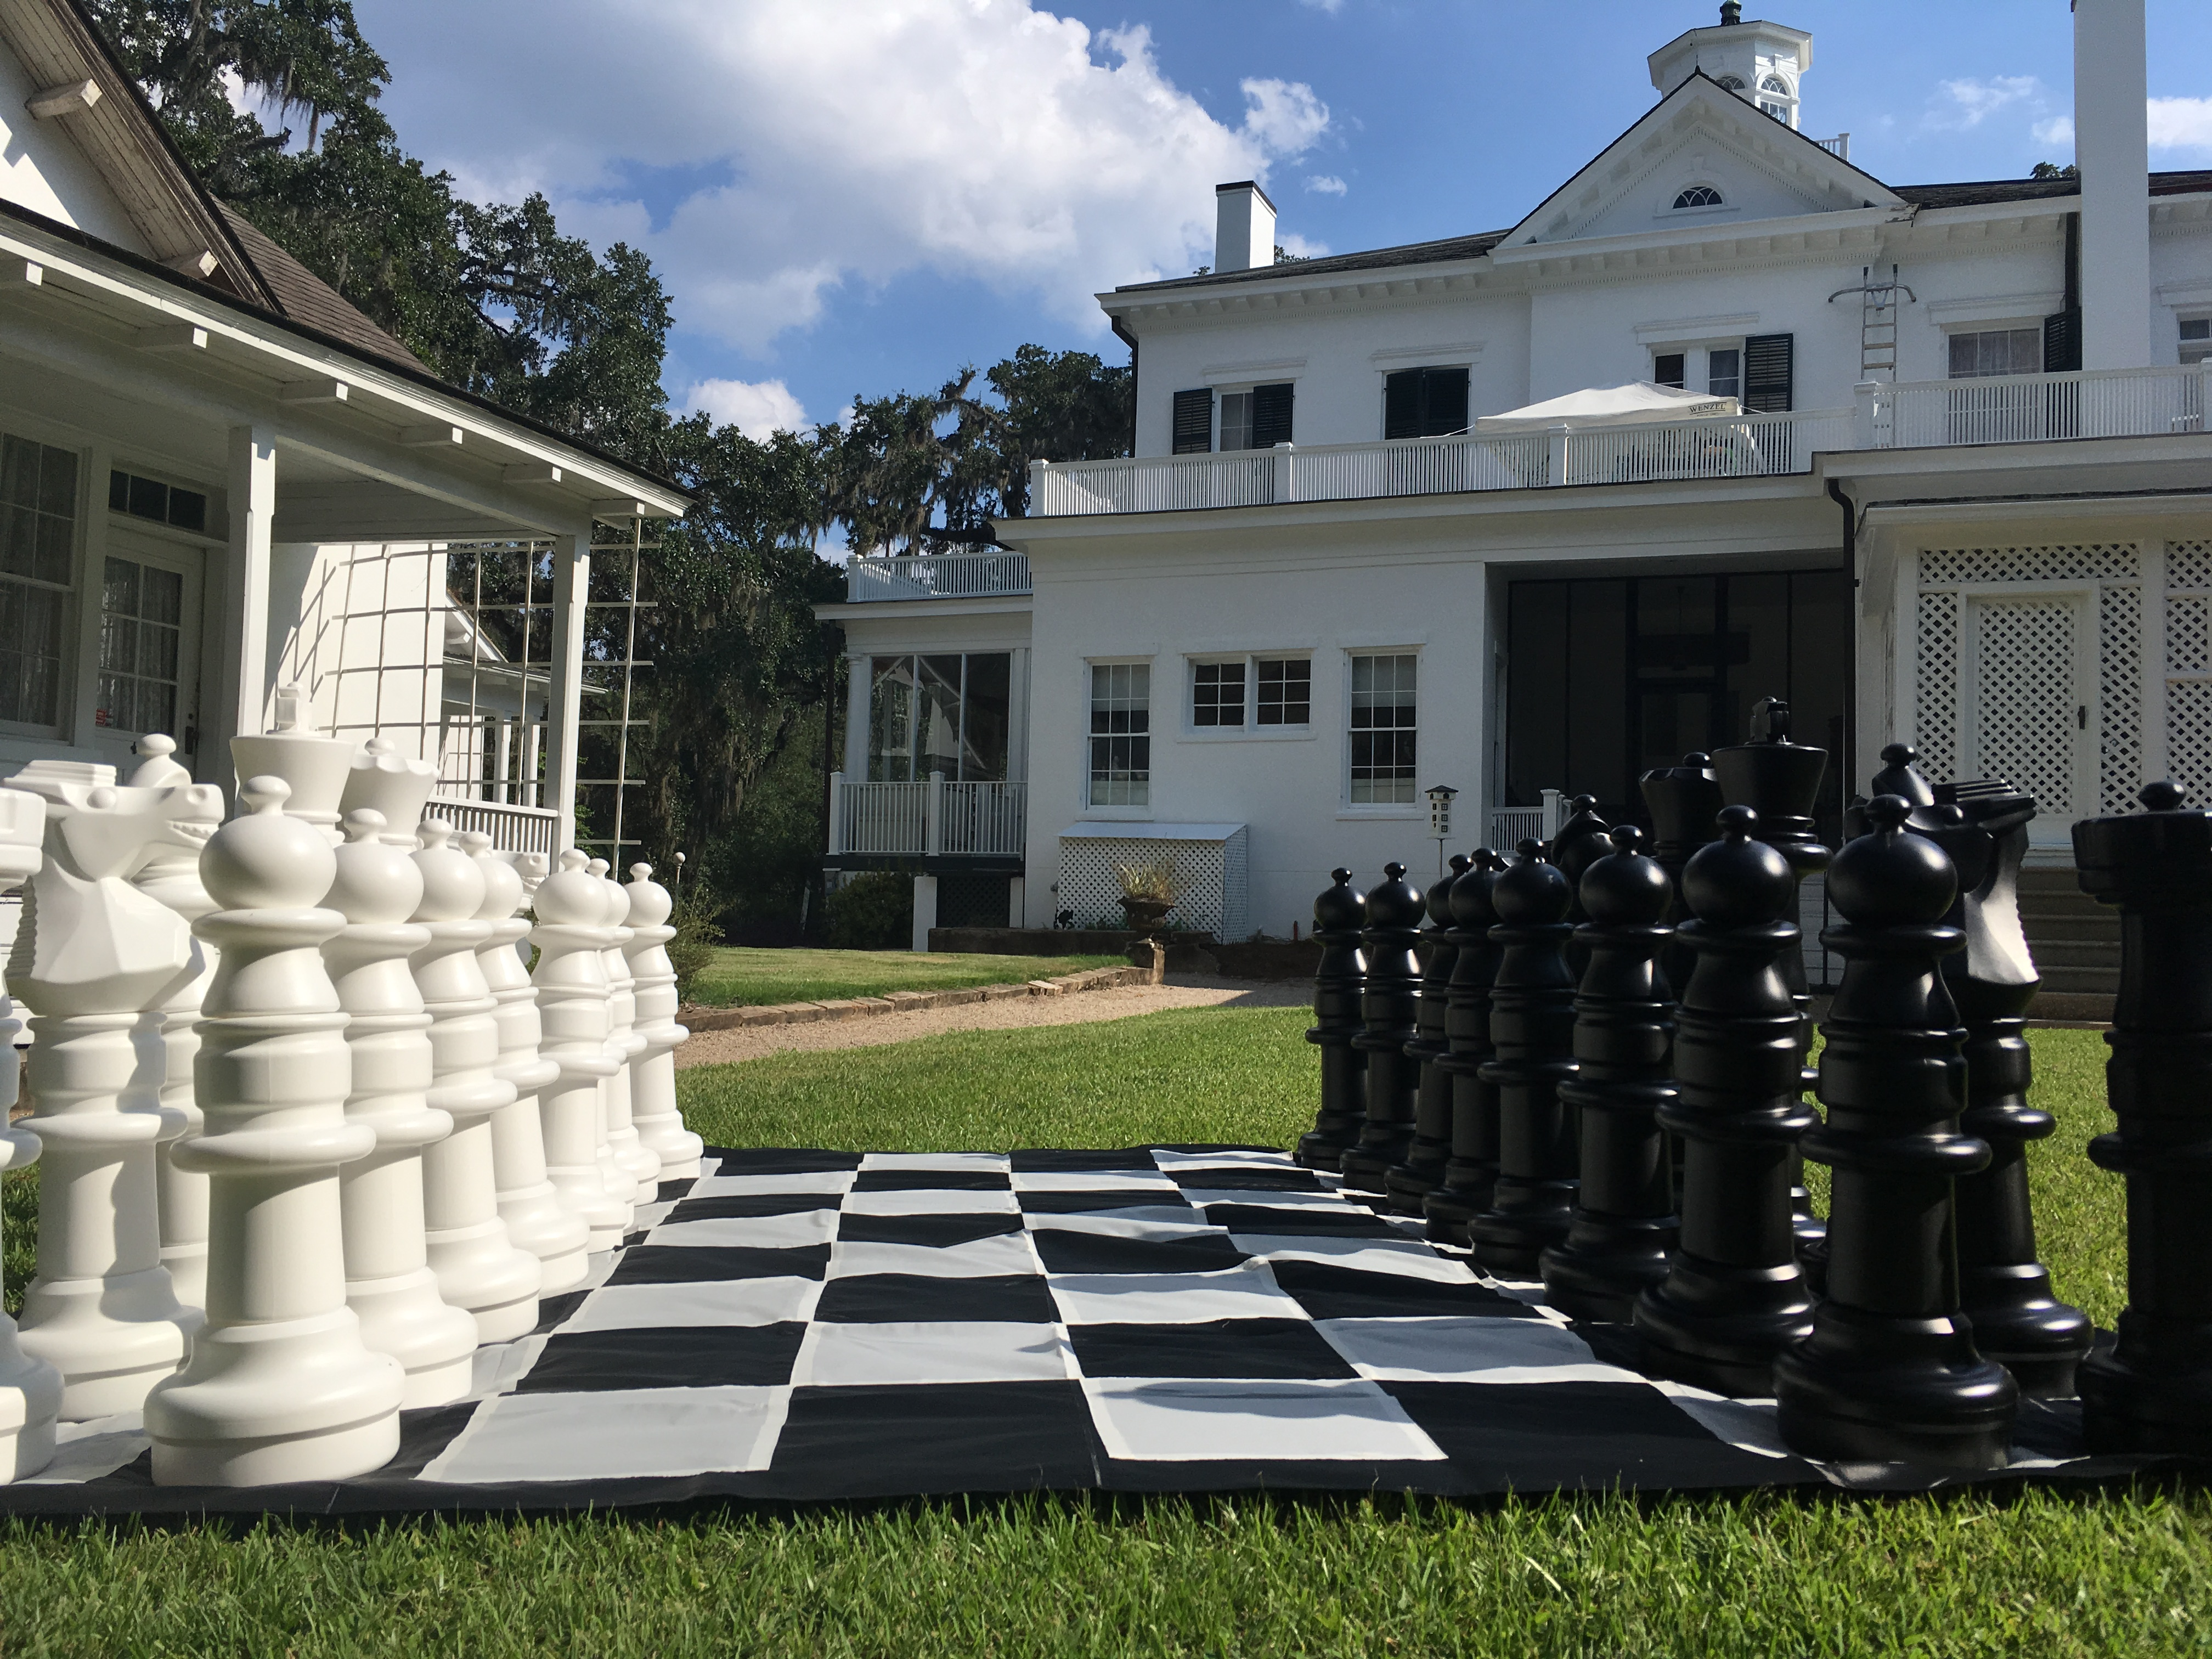 Goodwood Museum & Gardens Giant Chess and Checkers